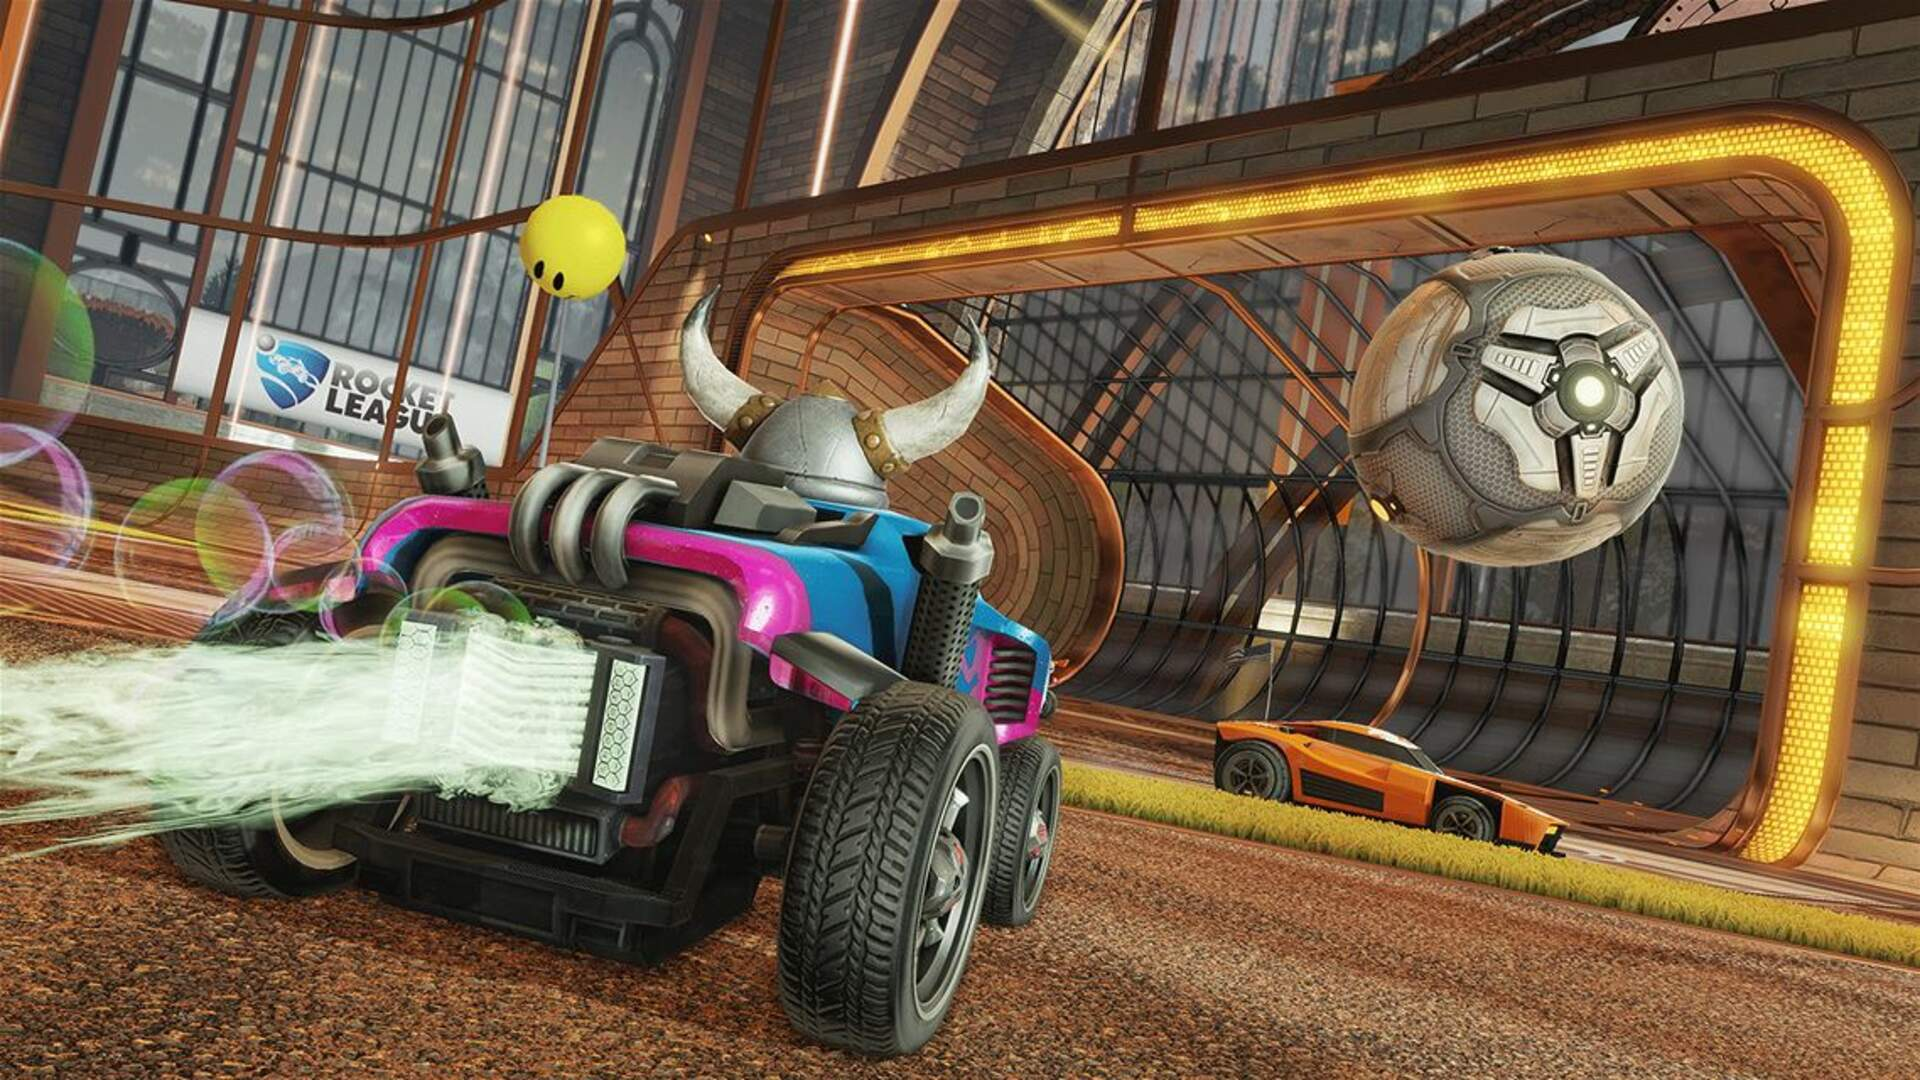 Epic Clarifies: No Announced Plans to Stop Selling Rocket League on Steam